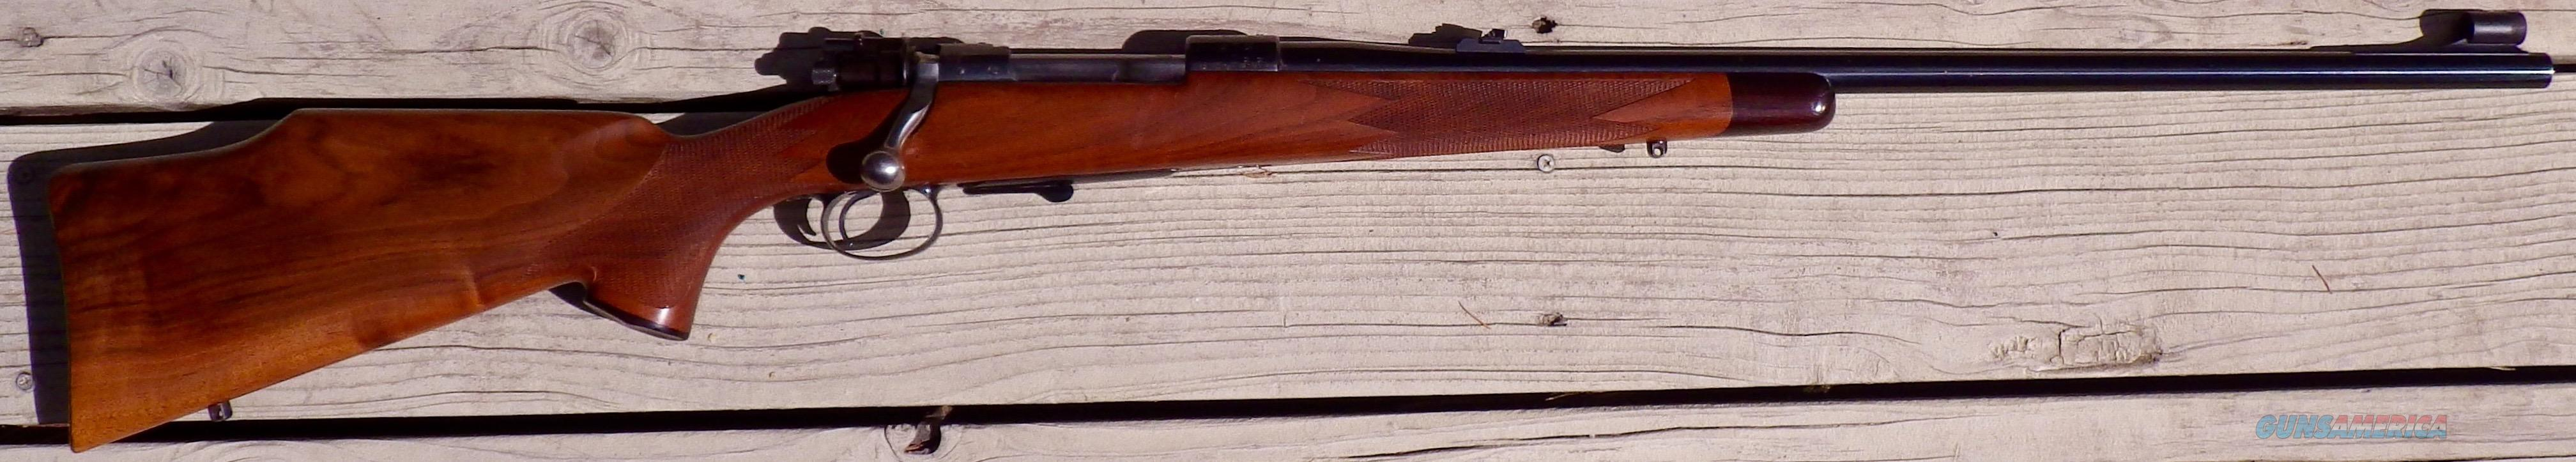 Mauser 98 Custom .30-06, new bolt handle and safety, Neidner butt  Guns > Rifles > Custom Rifles > Bolt Action